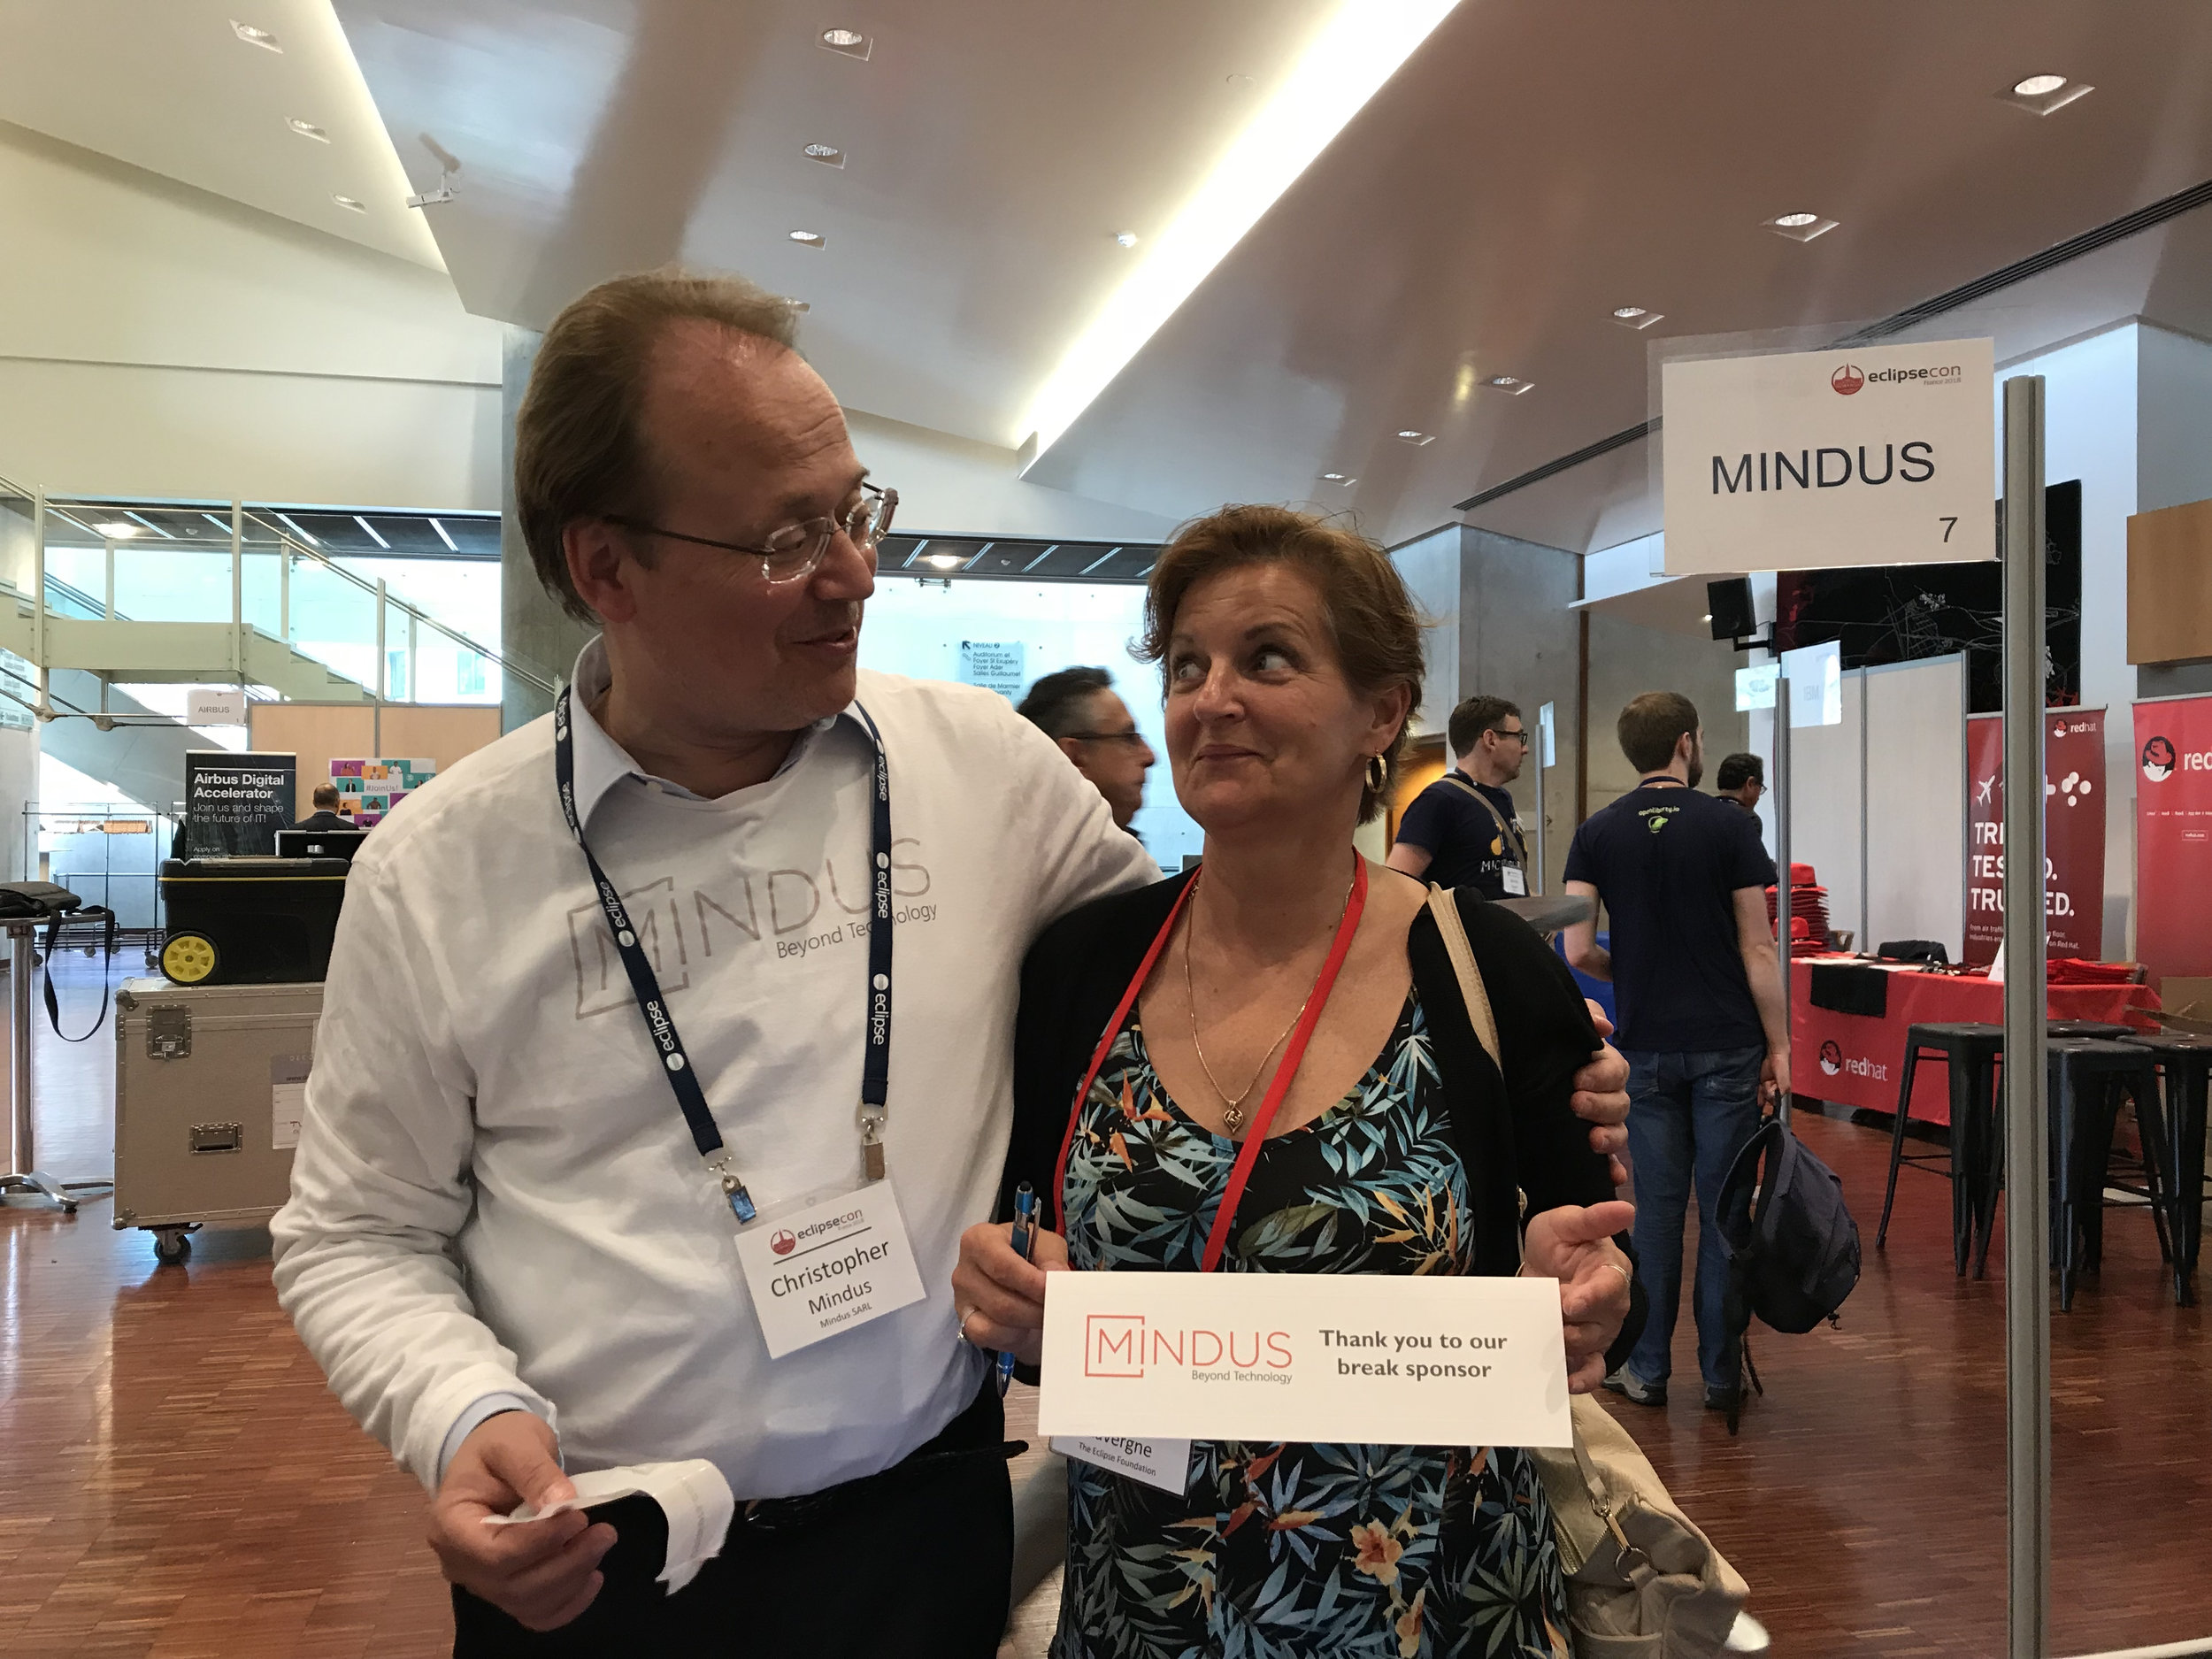 Christopher Mindus with EclipseCon's Perri Lavergne